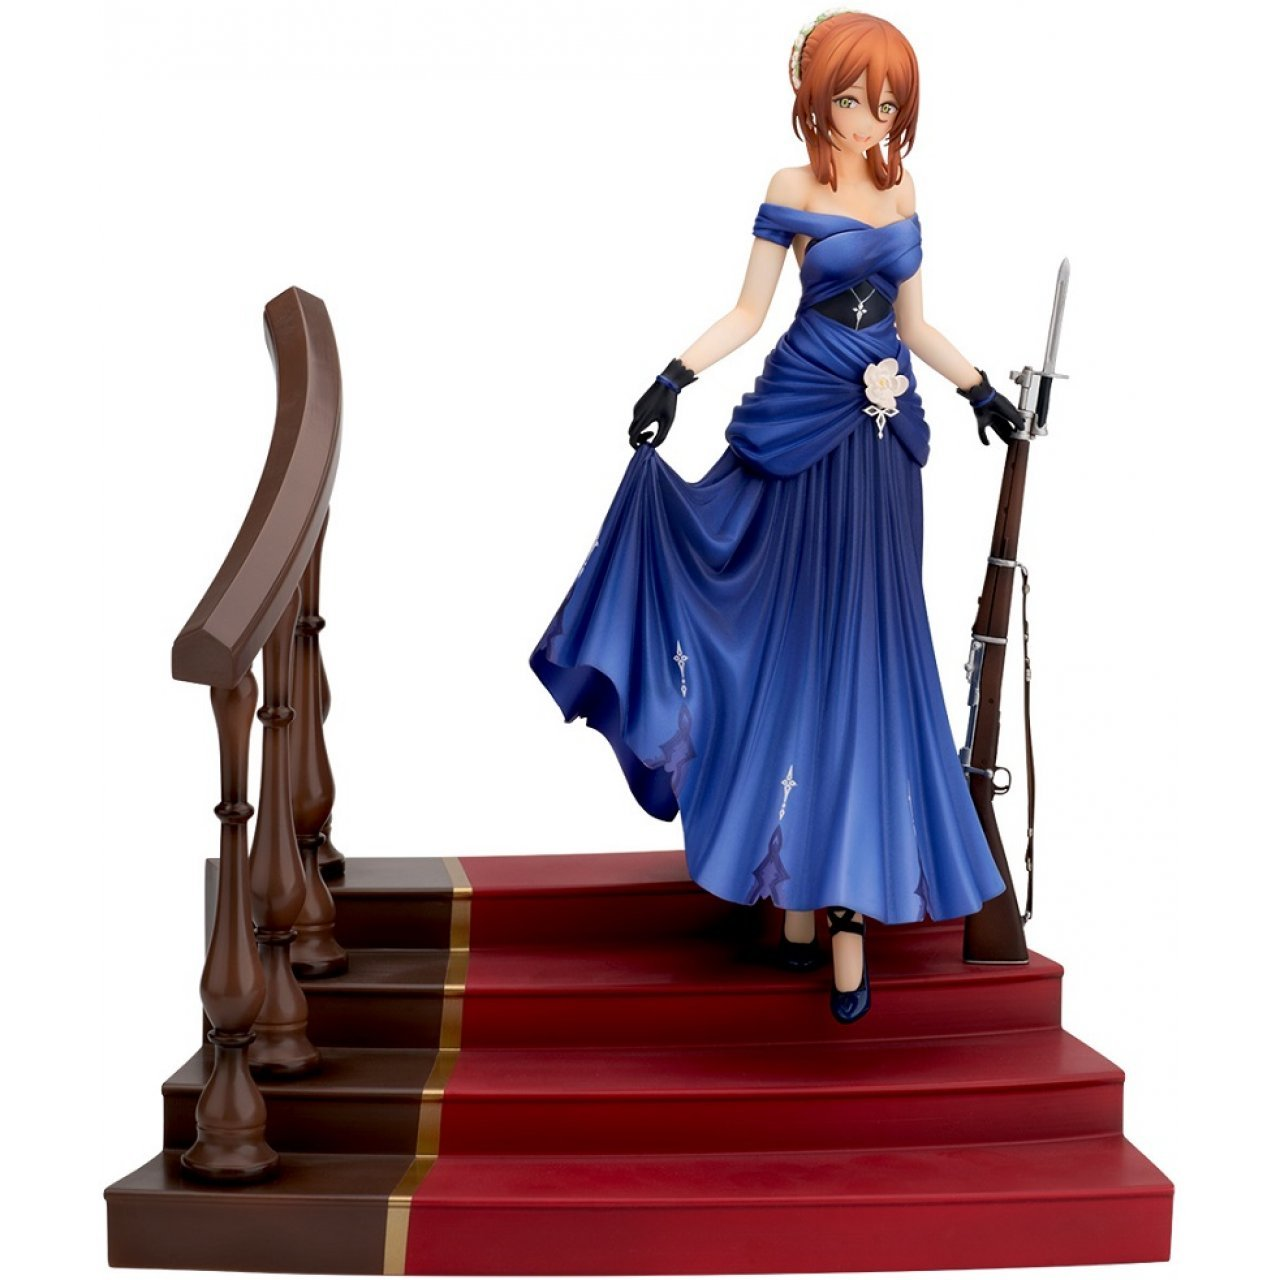 6b5c26183a Girls' Frontline 1/8 Scale Pre-Painted Figure: Springfield Queen Under ...